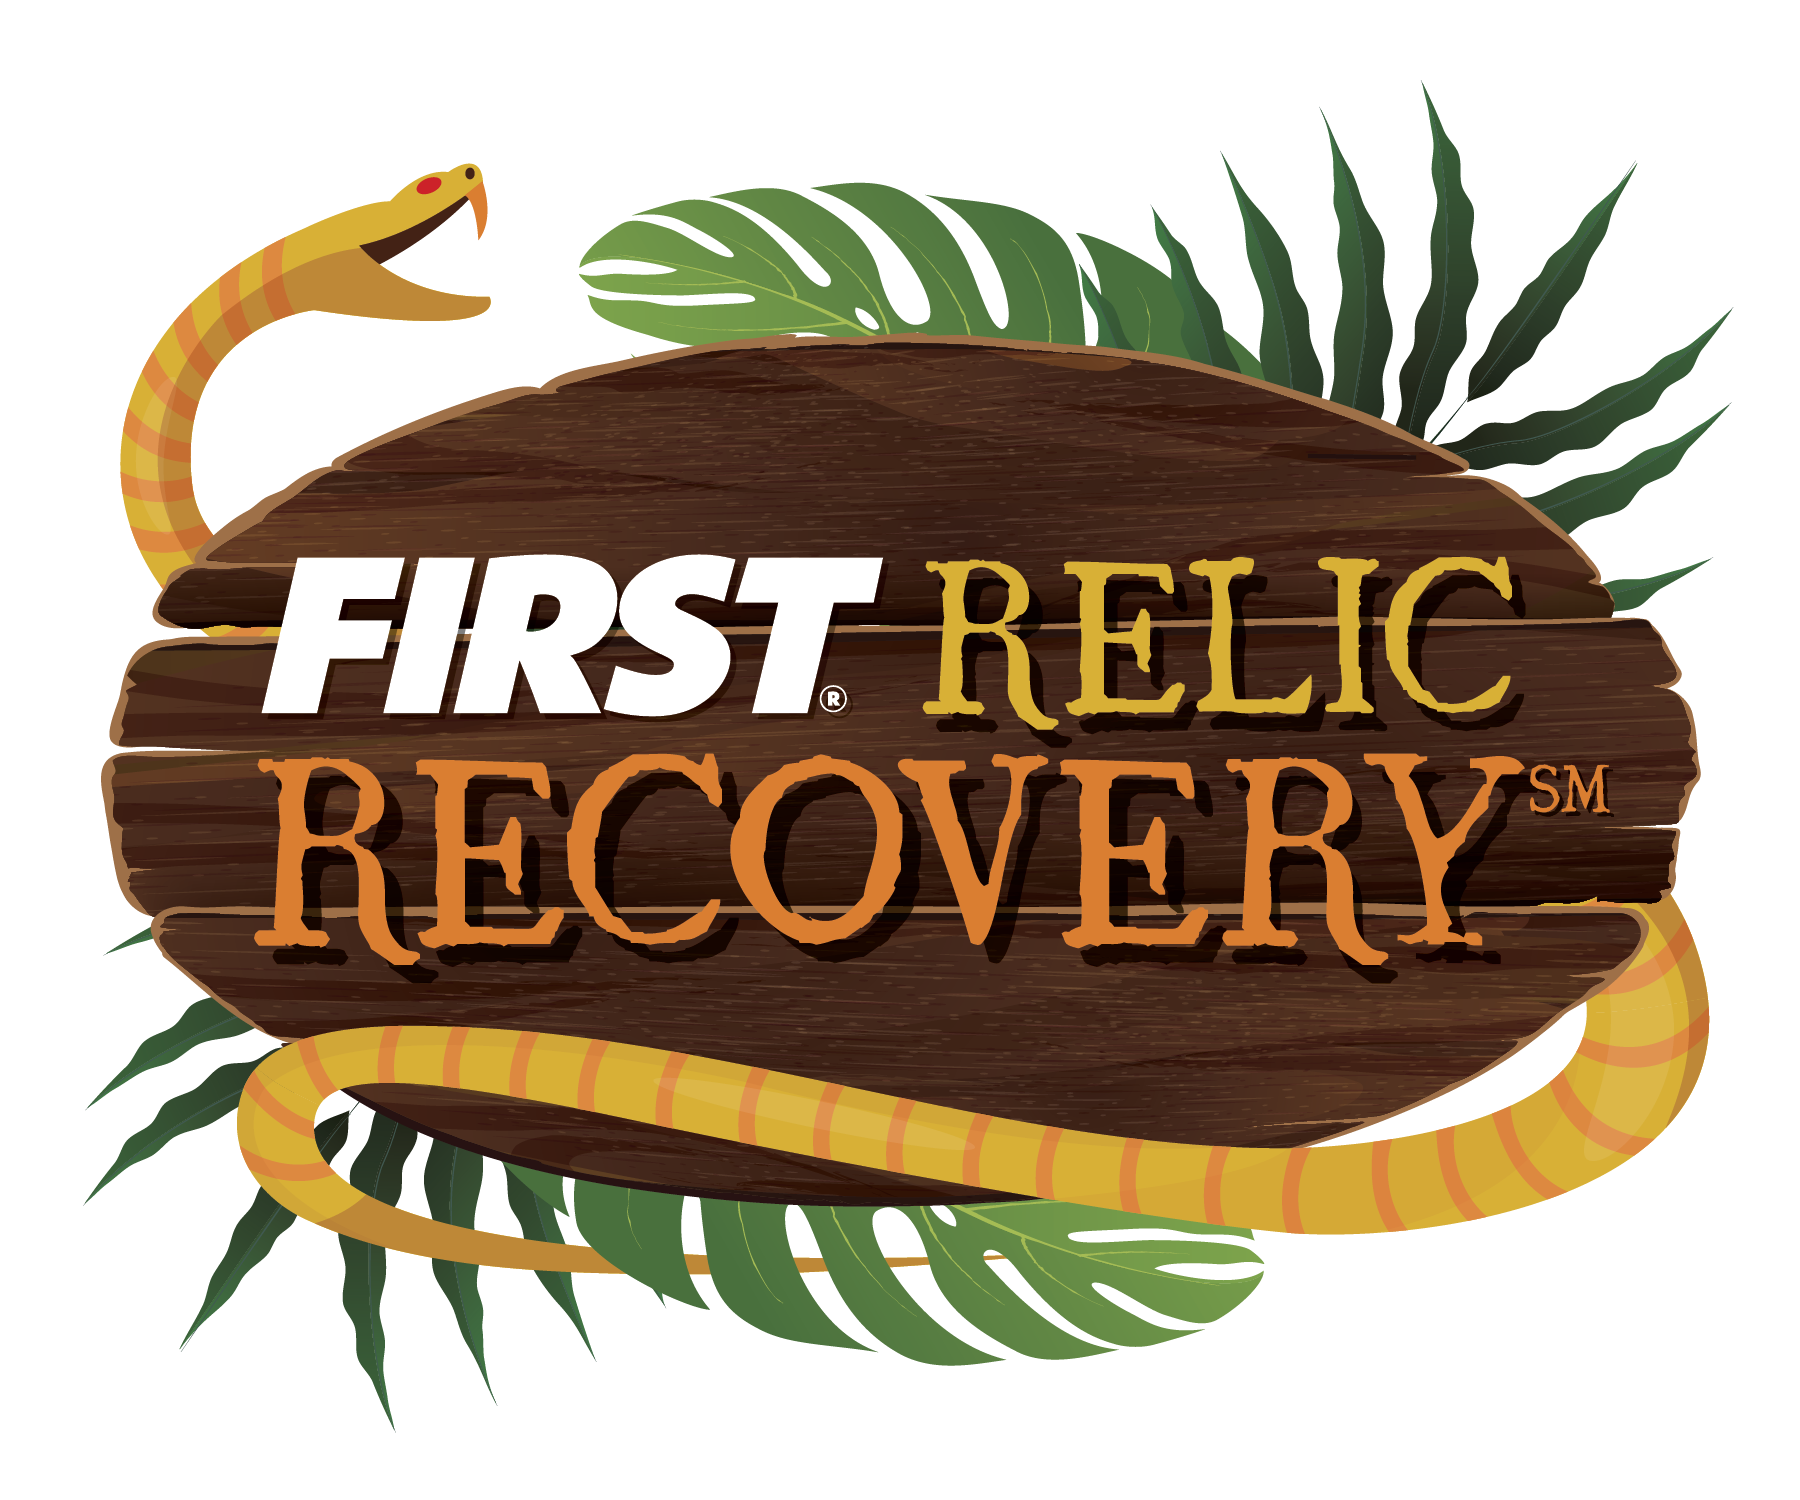 FIRST FTC RelicRecovery17 18 Color